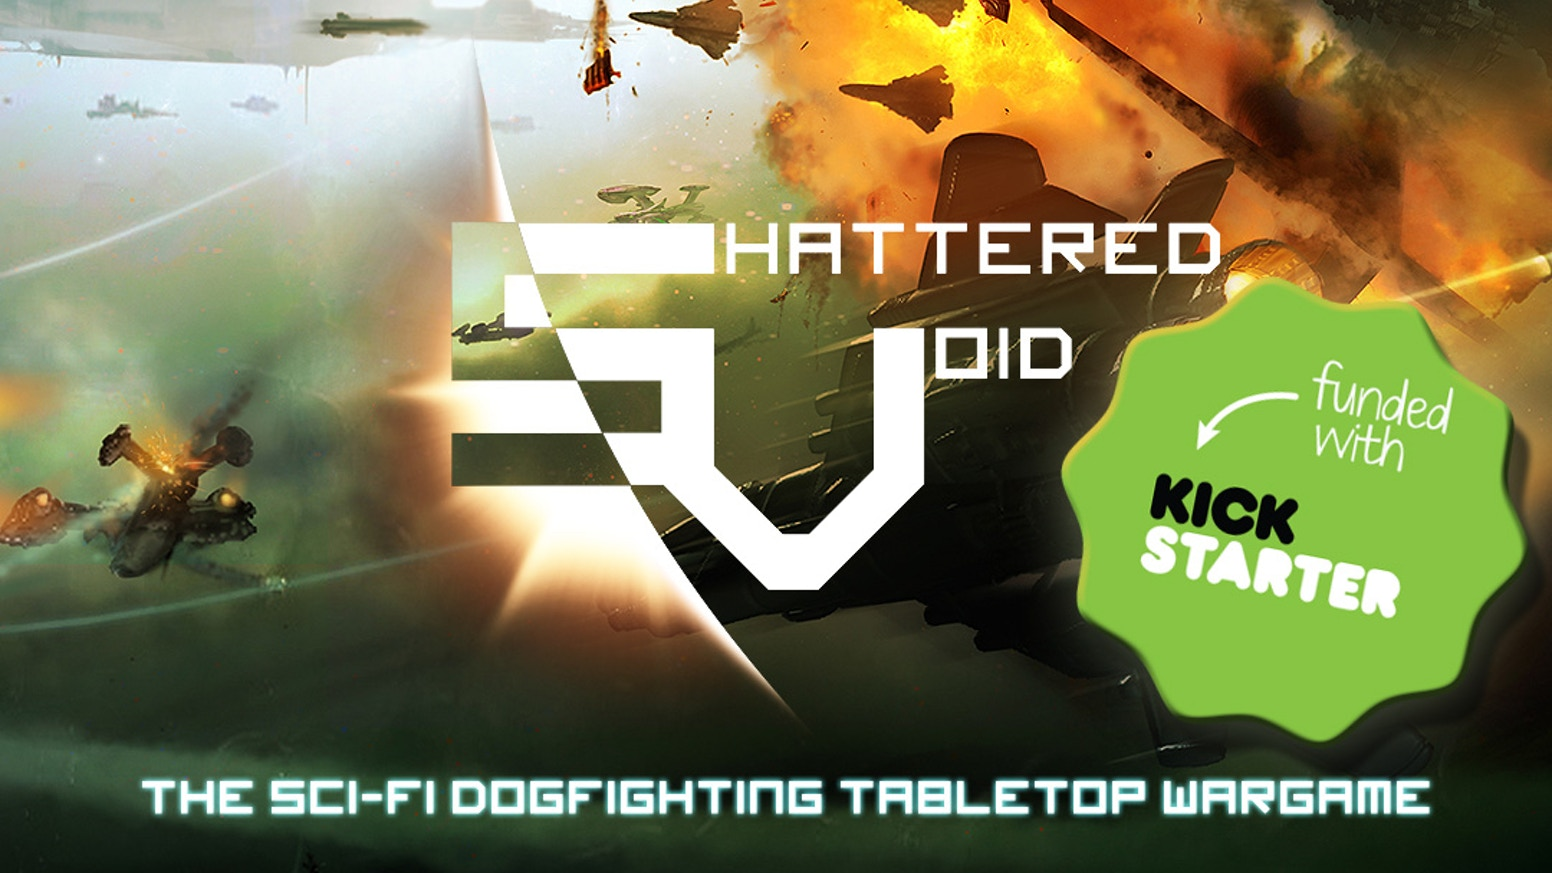 Shattered Void is a science-fiction based tabletop wargame in which squadrons of fighters battle for dominance in the vastness of space